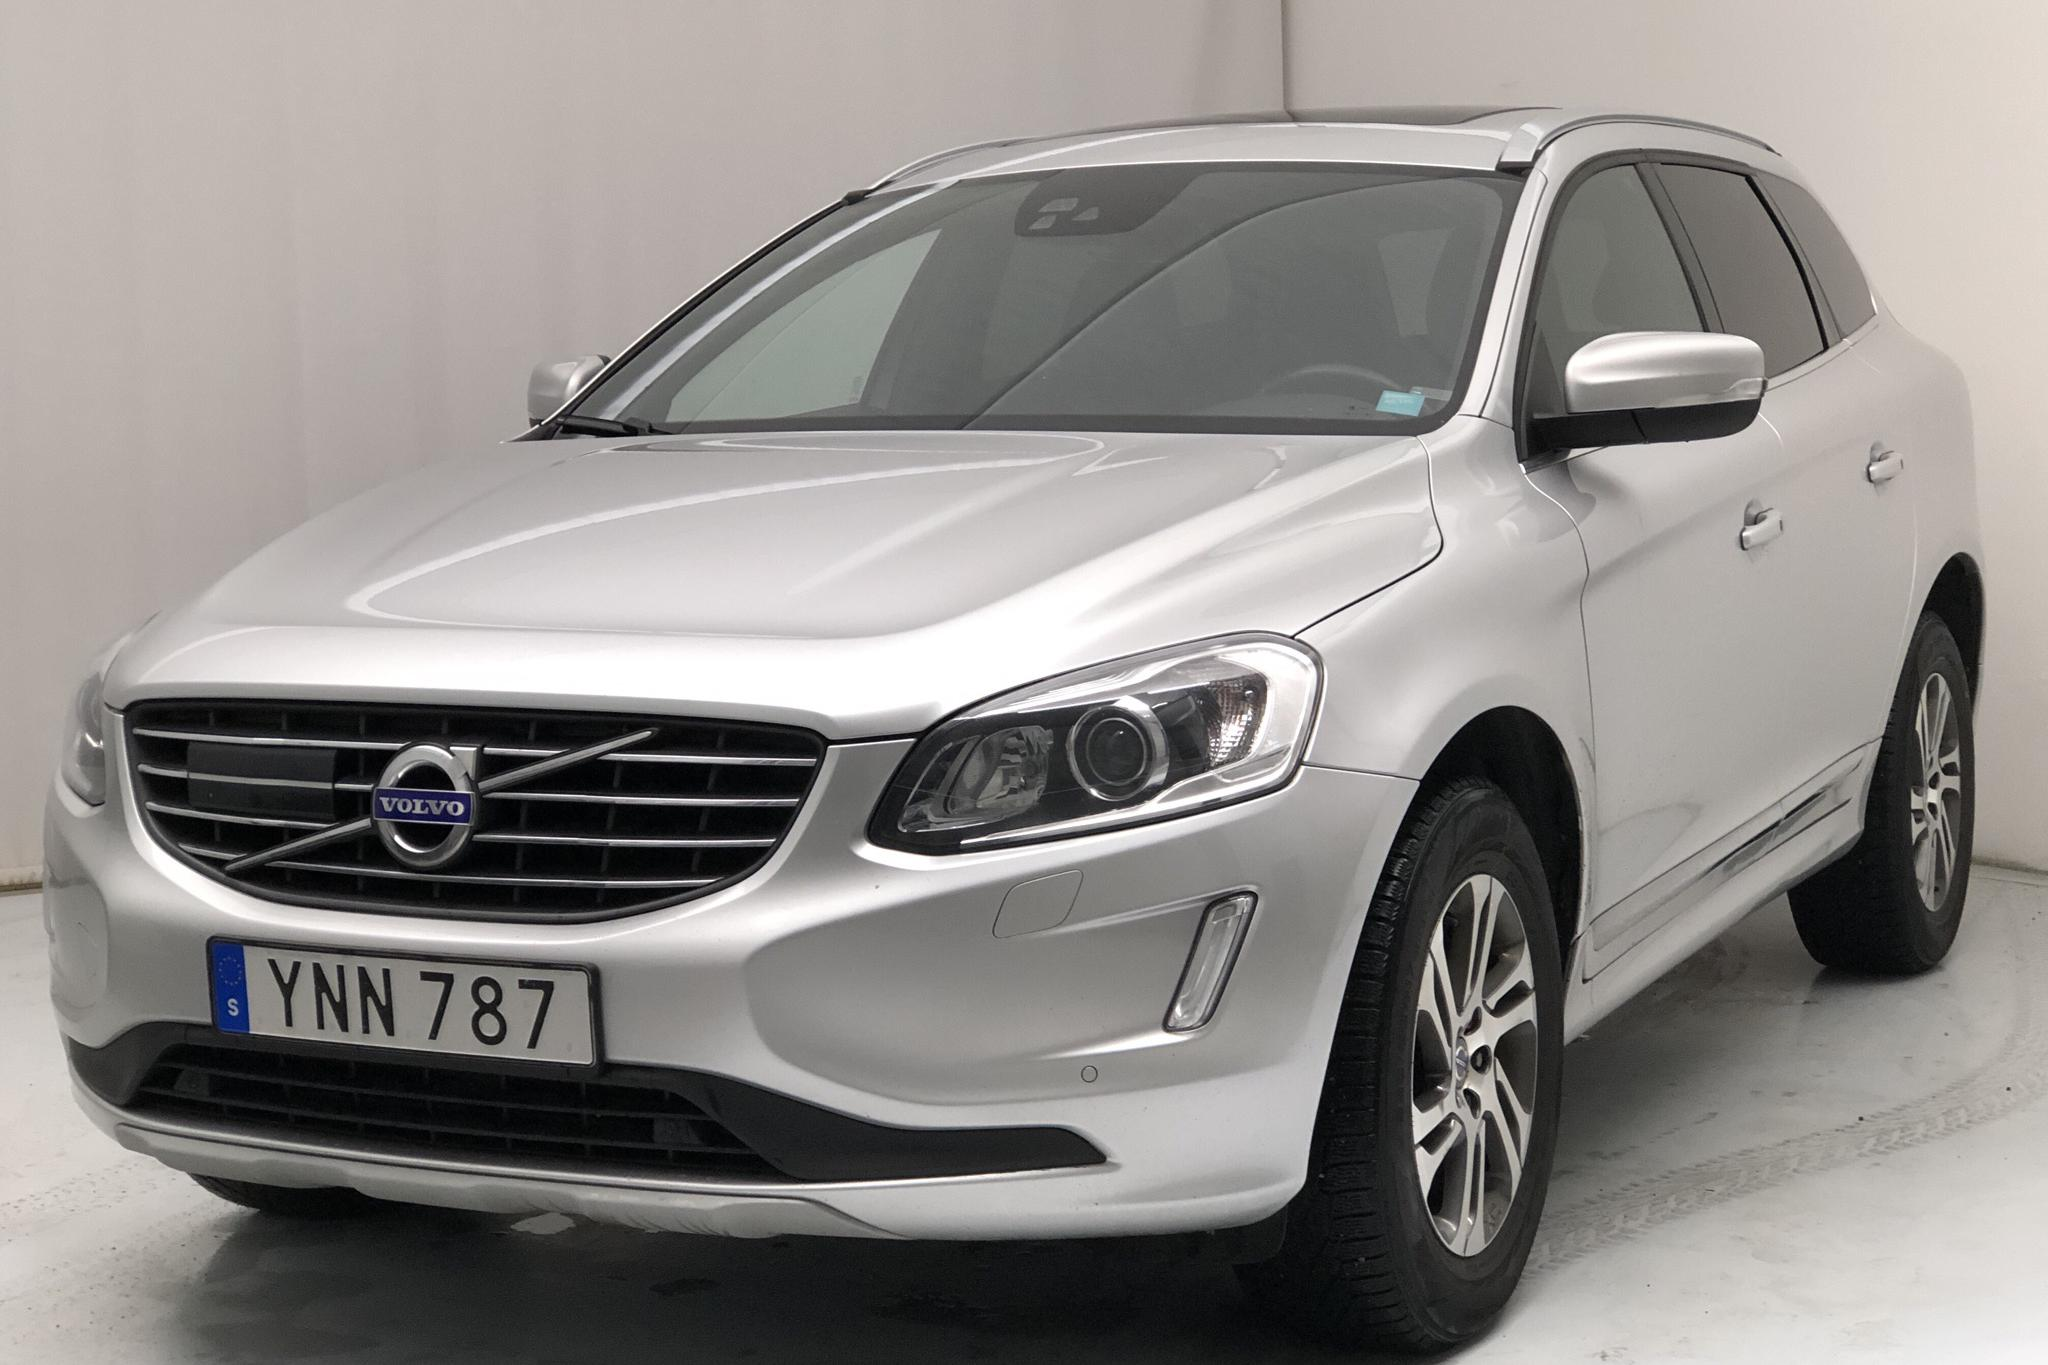 Volvo XC60 D4 AWD (190hk) - 12 040 mil - Automat - silver - 2017